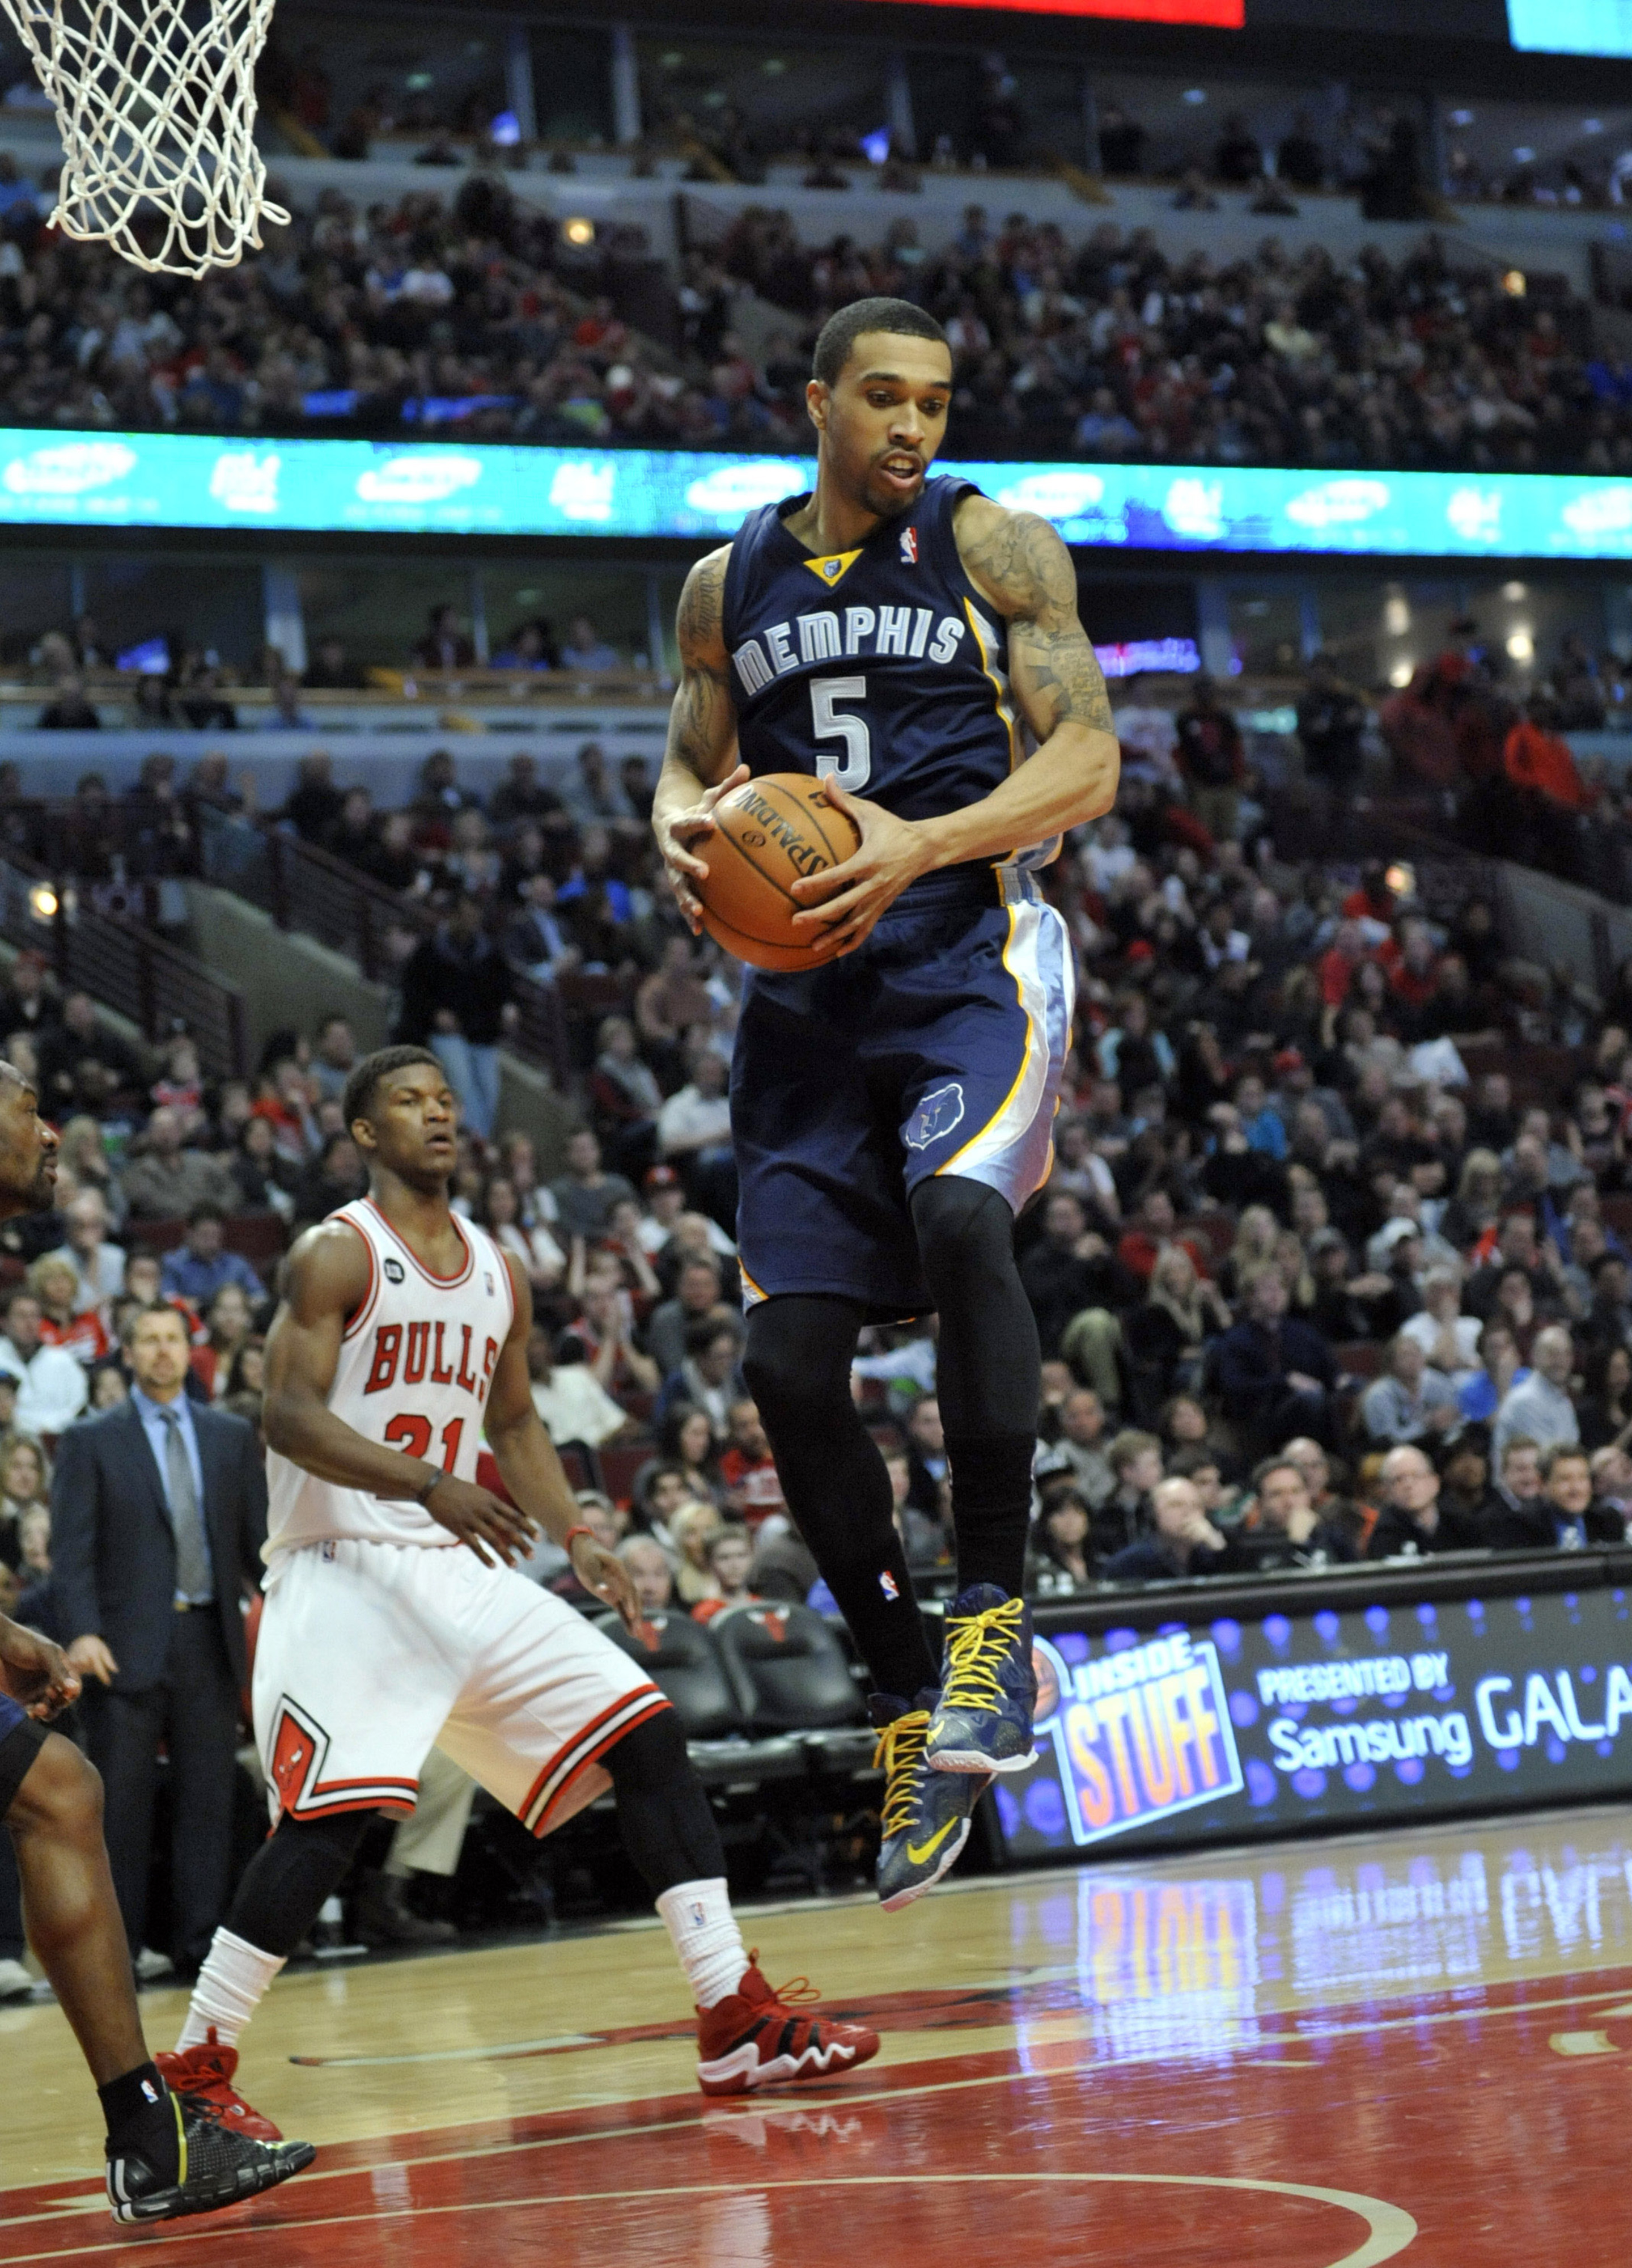 The Grizzlies are 7-2 when Courtney Lee snags 5 or more rebounds.